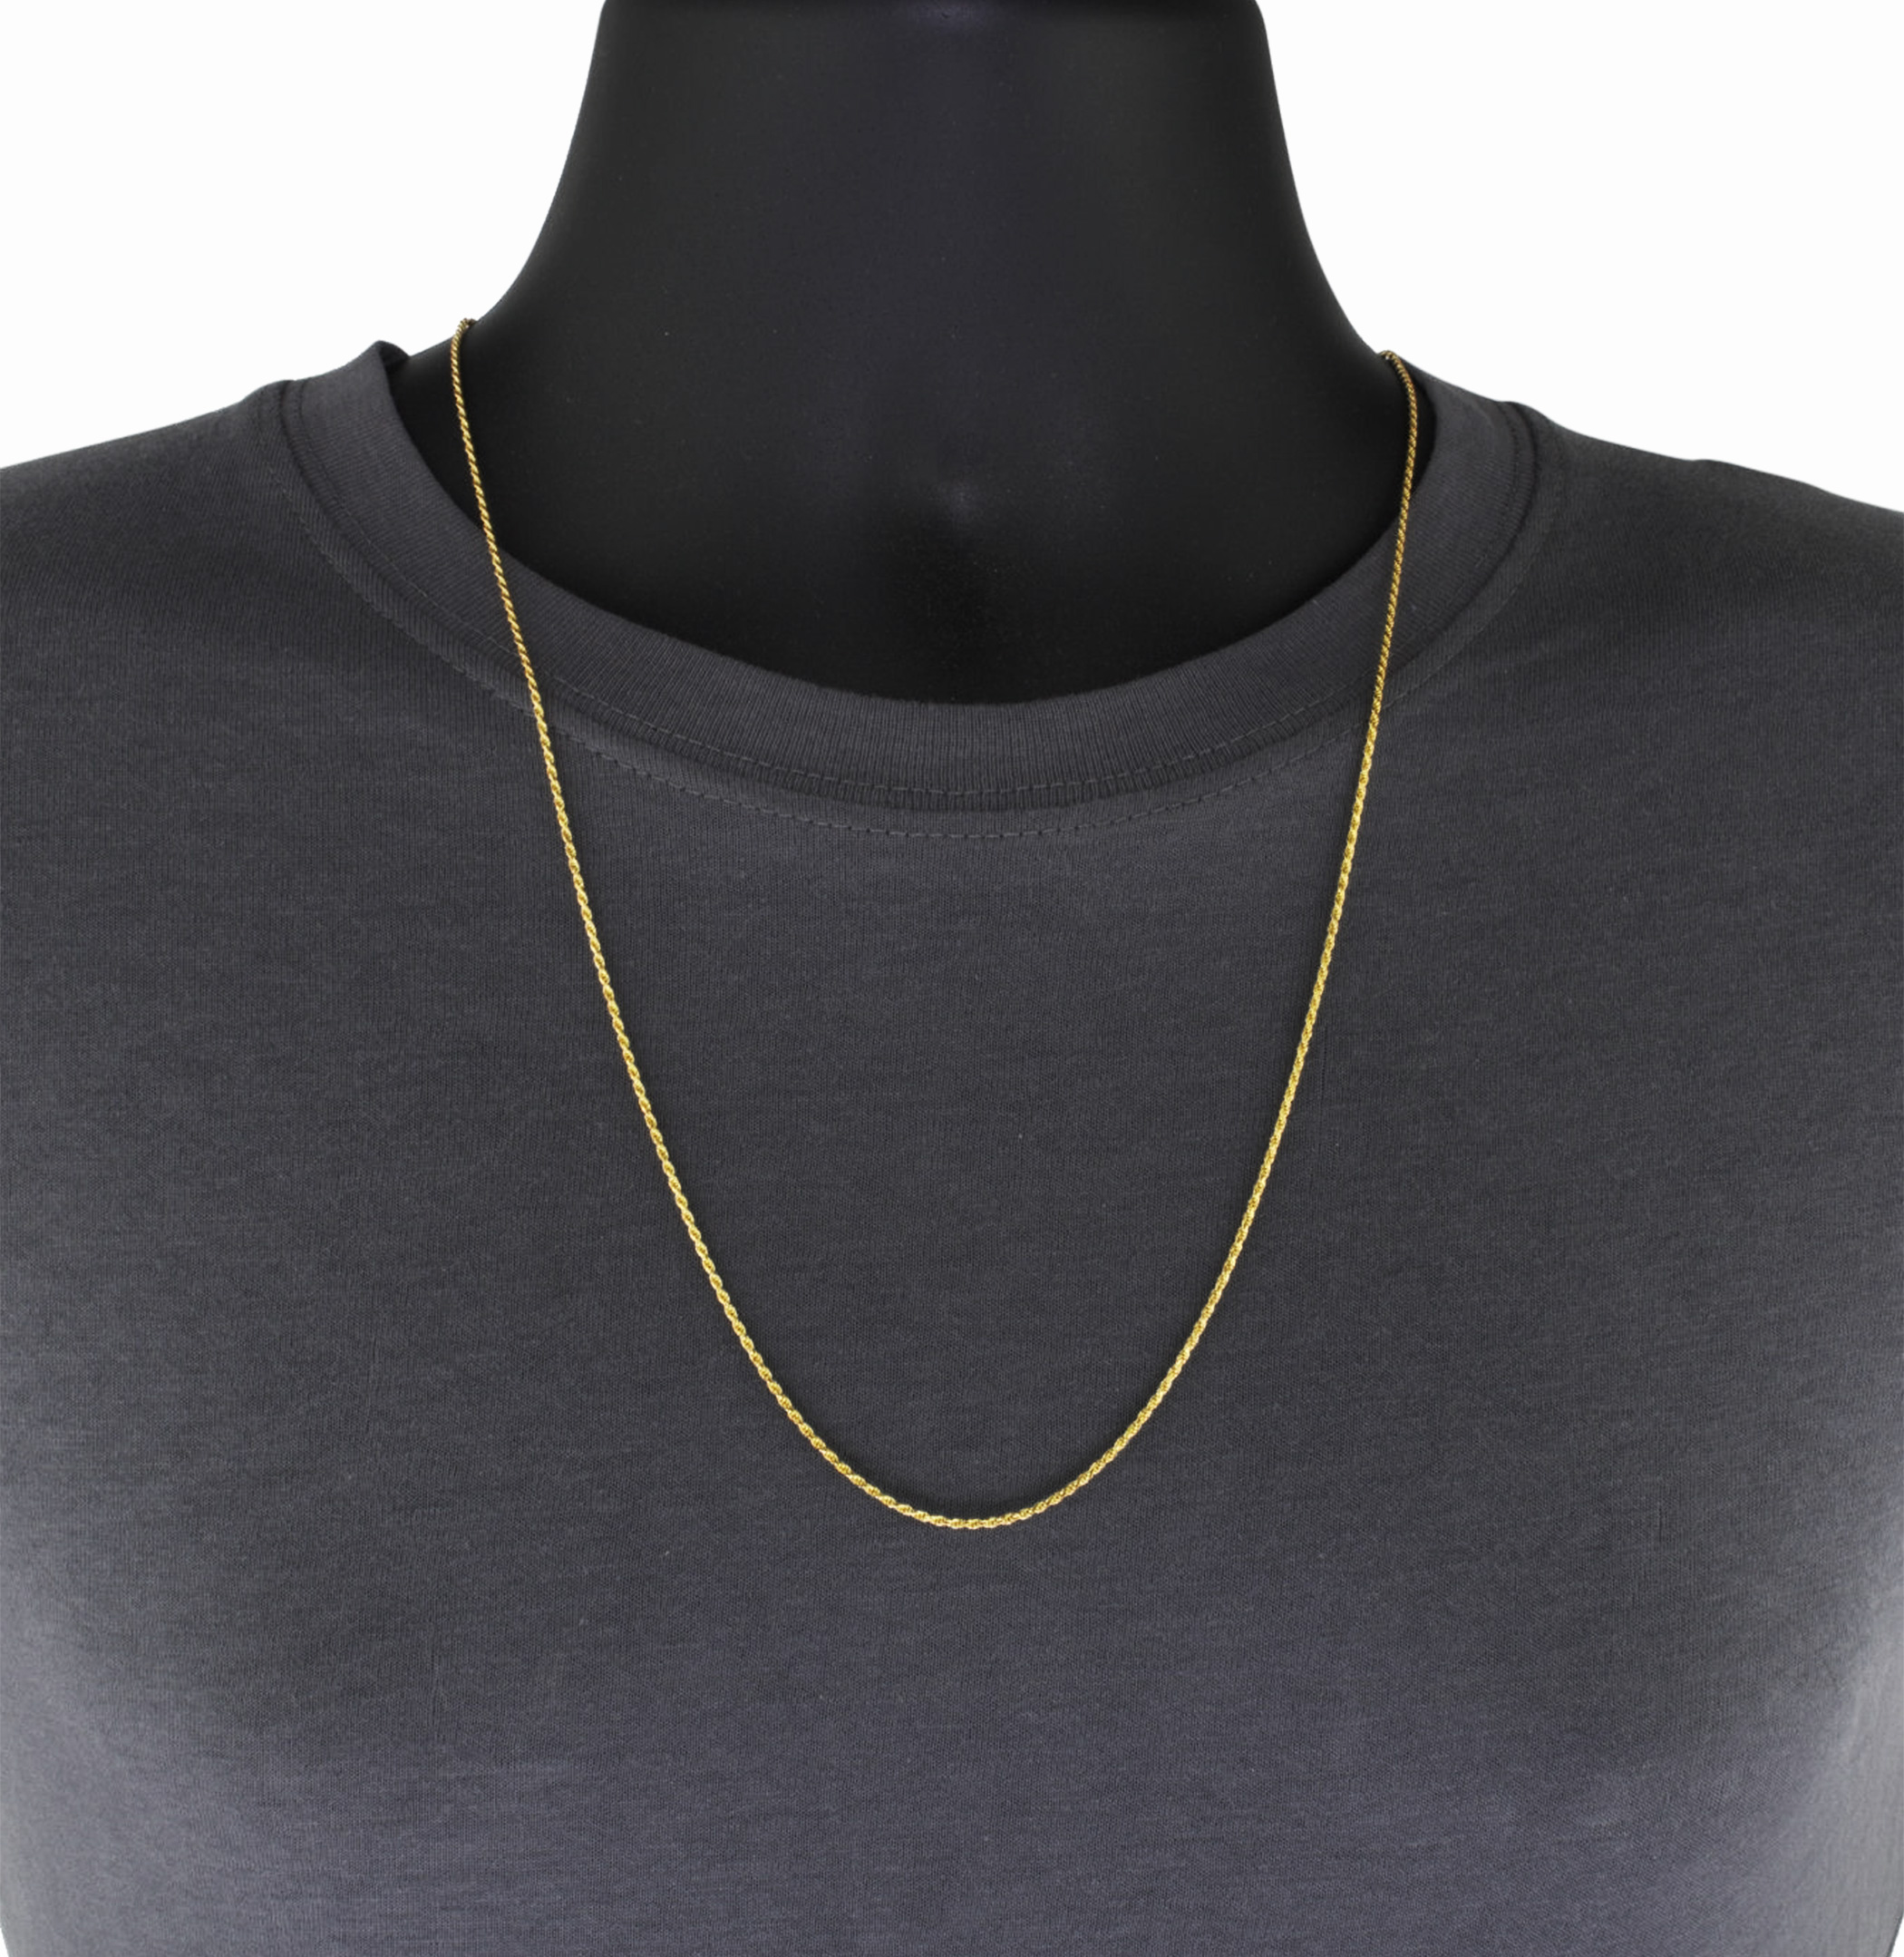 REAL 10k Yellow Gold Italian 3mm Mens Womens Diamond Cut Rope Chain Necklace 22″